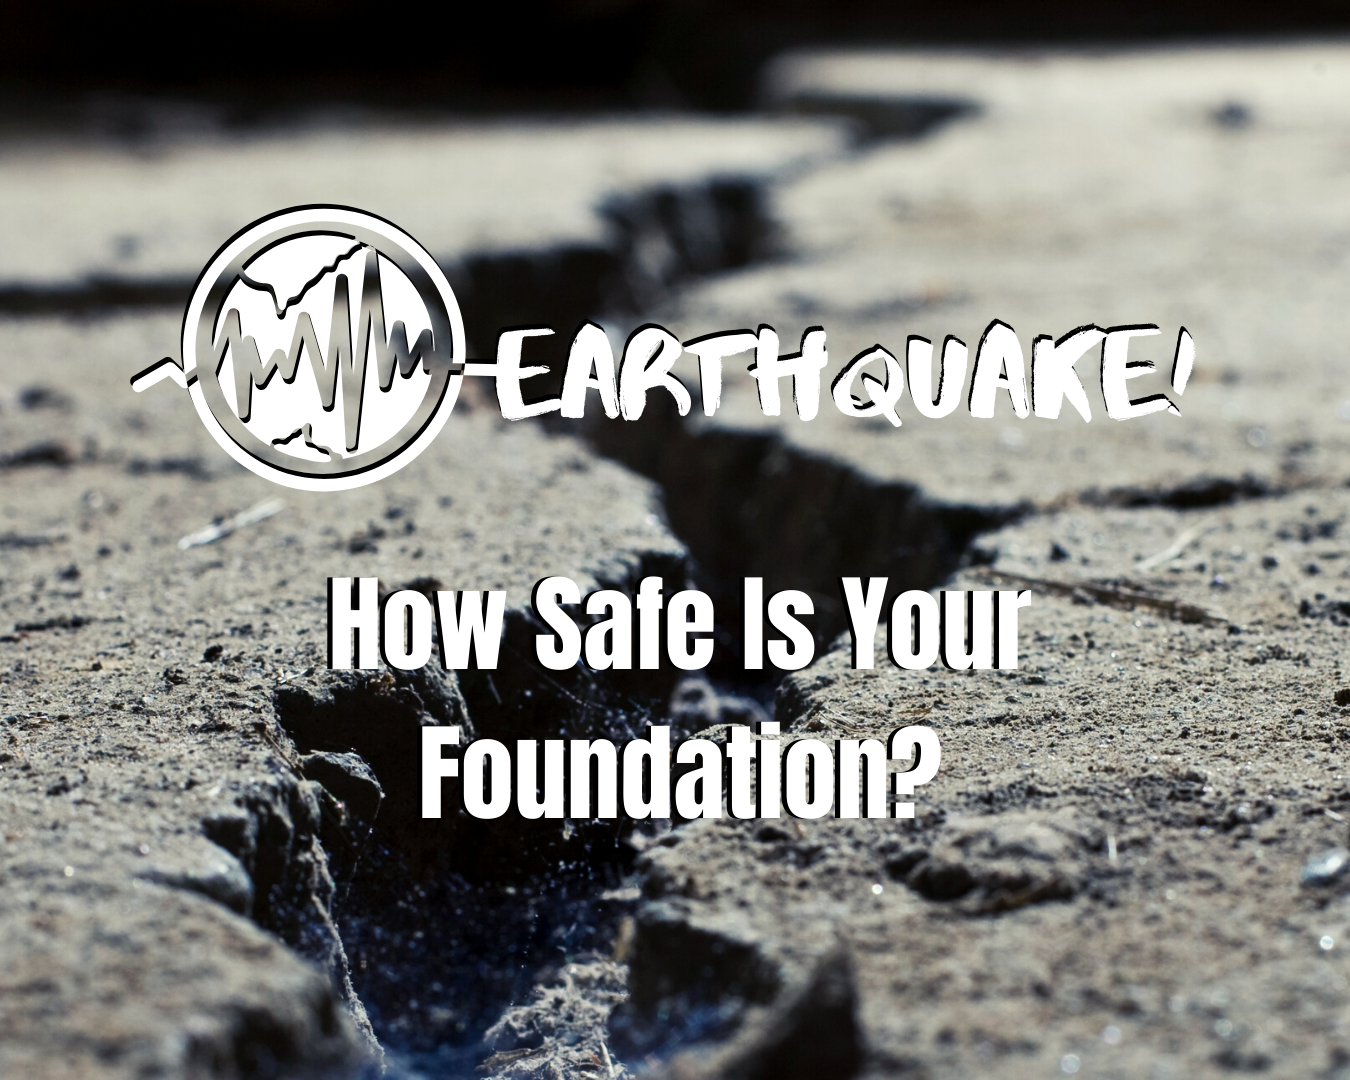 how safe is your foundation